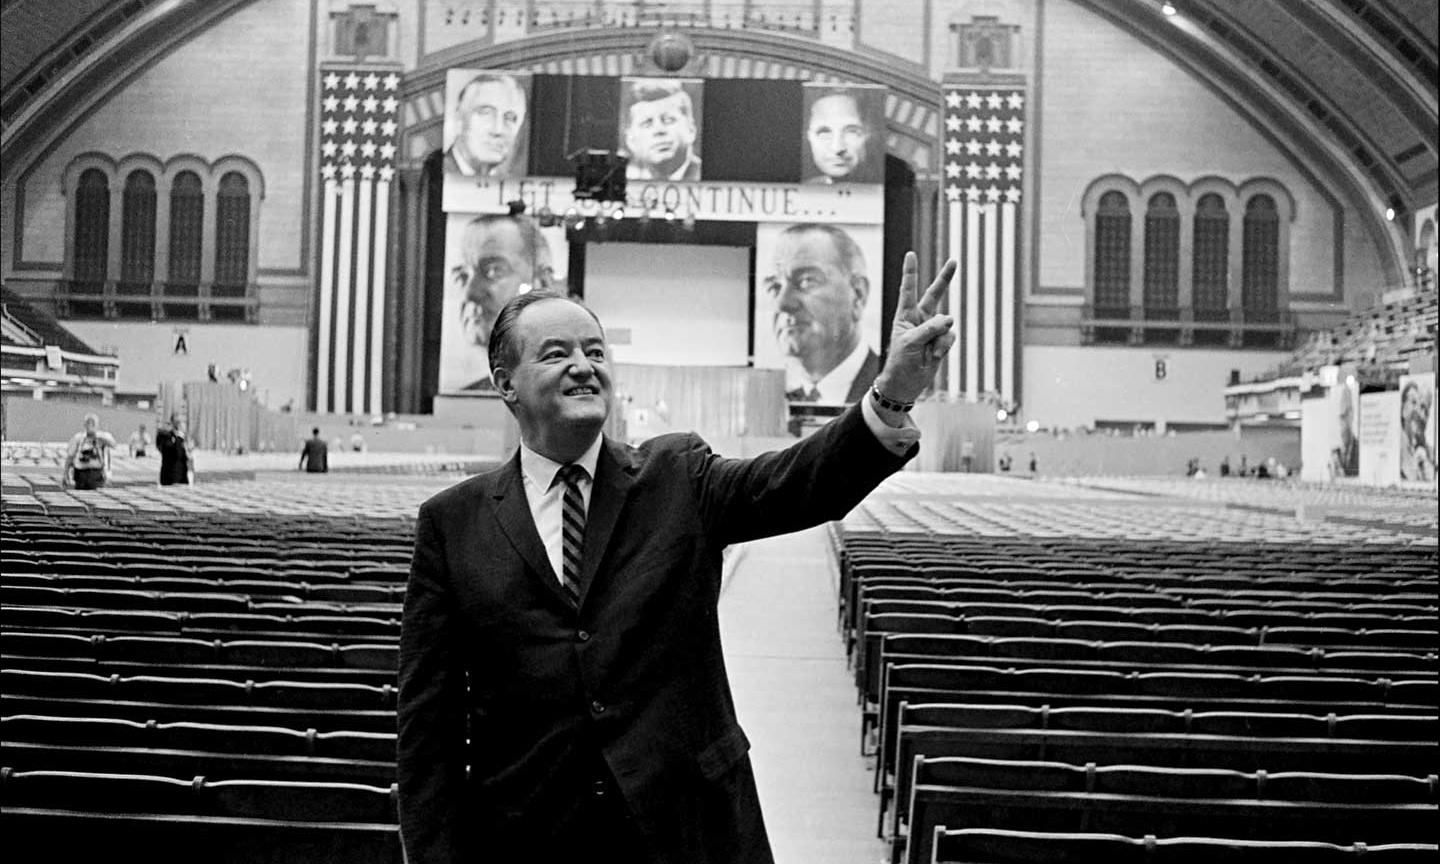 Trump is peddling hate in Minnesota. To defeat him, look to Hubert Humphrey